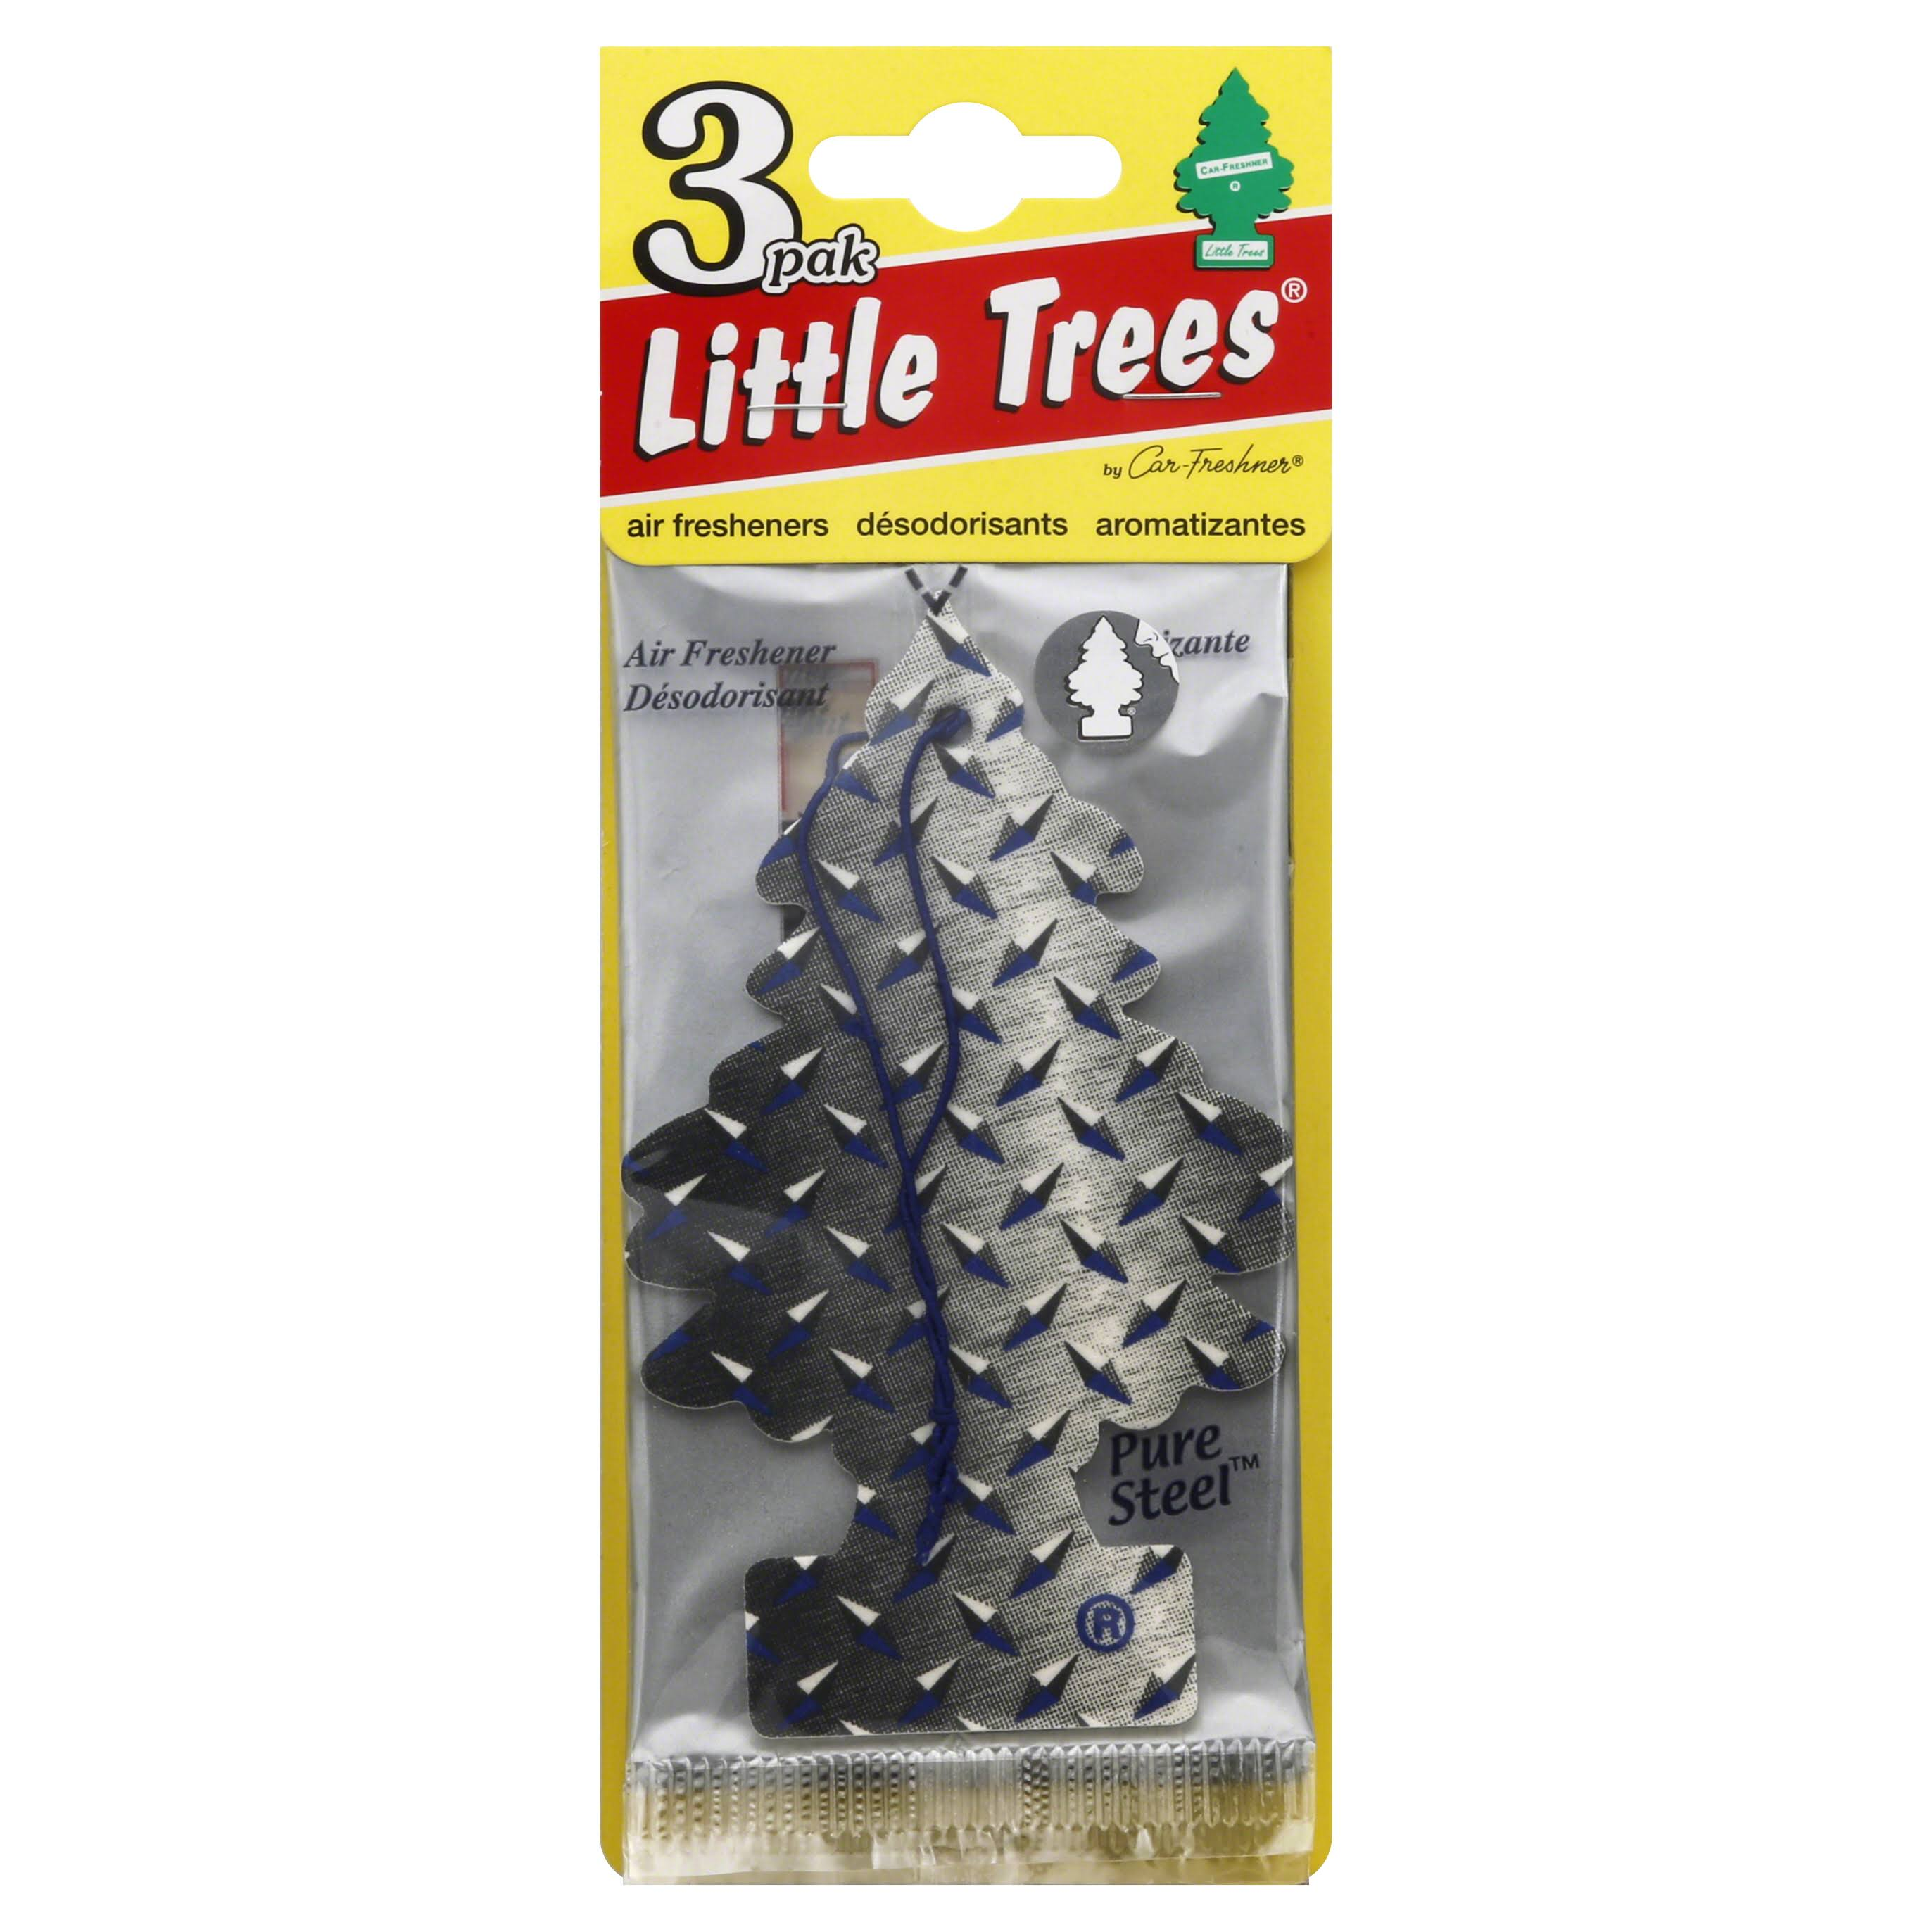 Little Tree Car Air Freshener - Pure Steel, 3 Pack